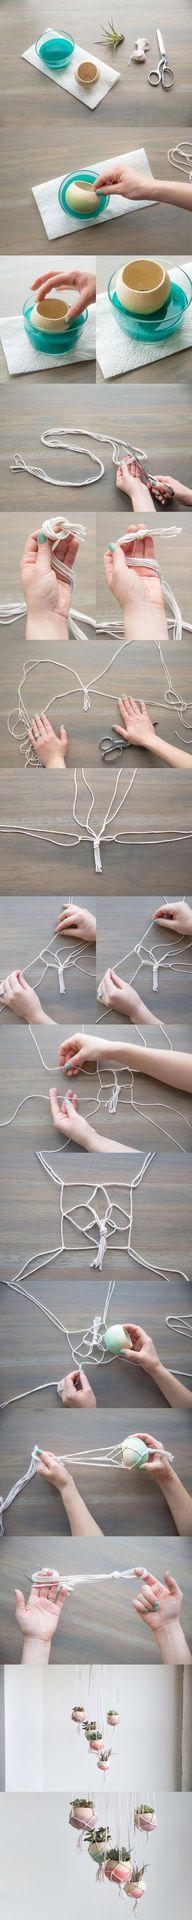 Diy Hanging Planters Resource: Unknown More Information: -None-